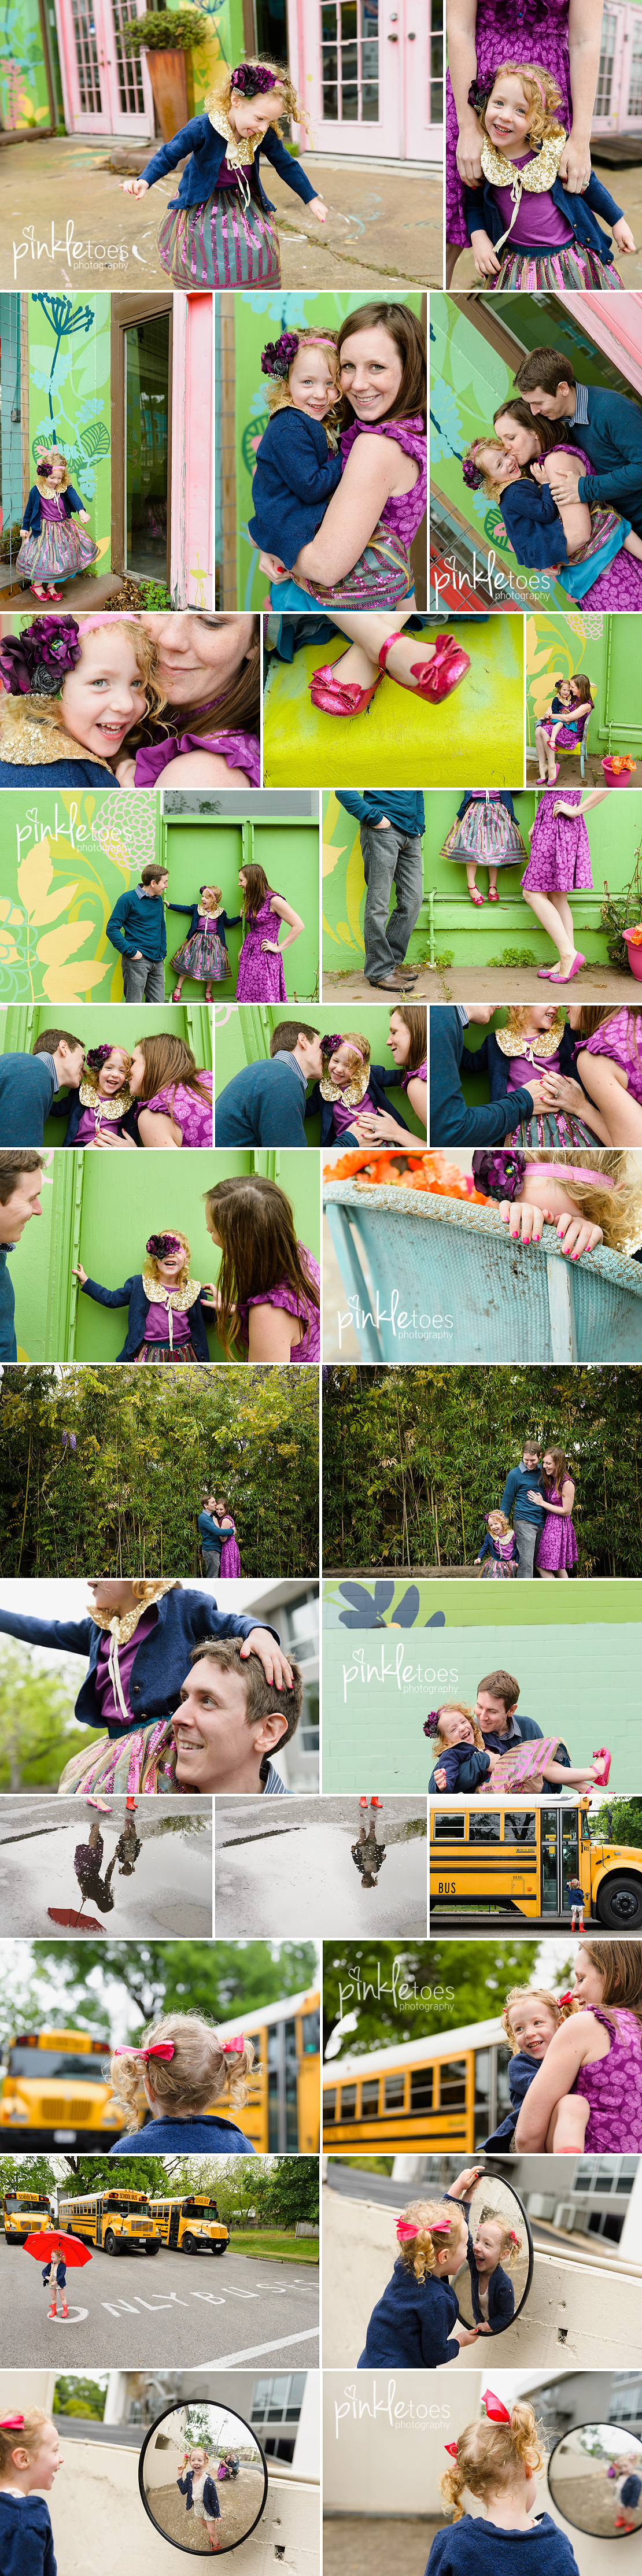 cb-pinkle-toes-colorful-candid-joyful-lifestyle-family-photographer